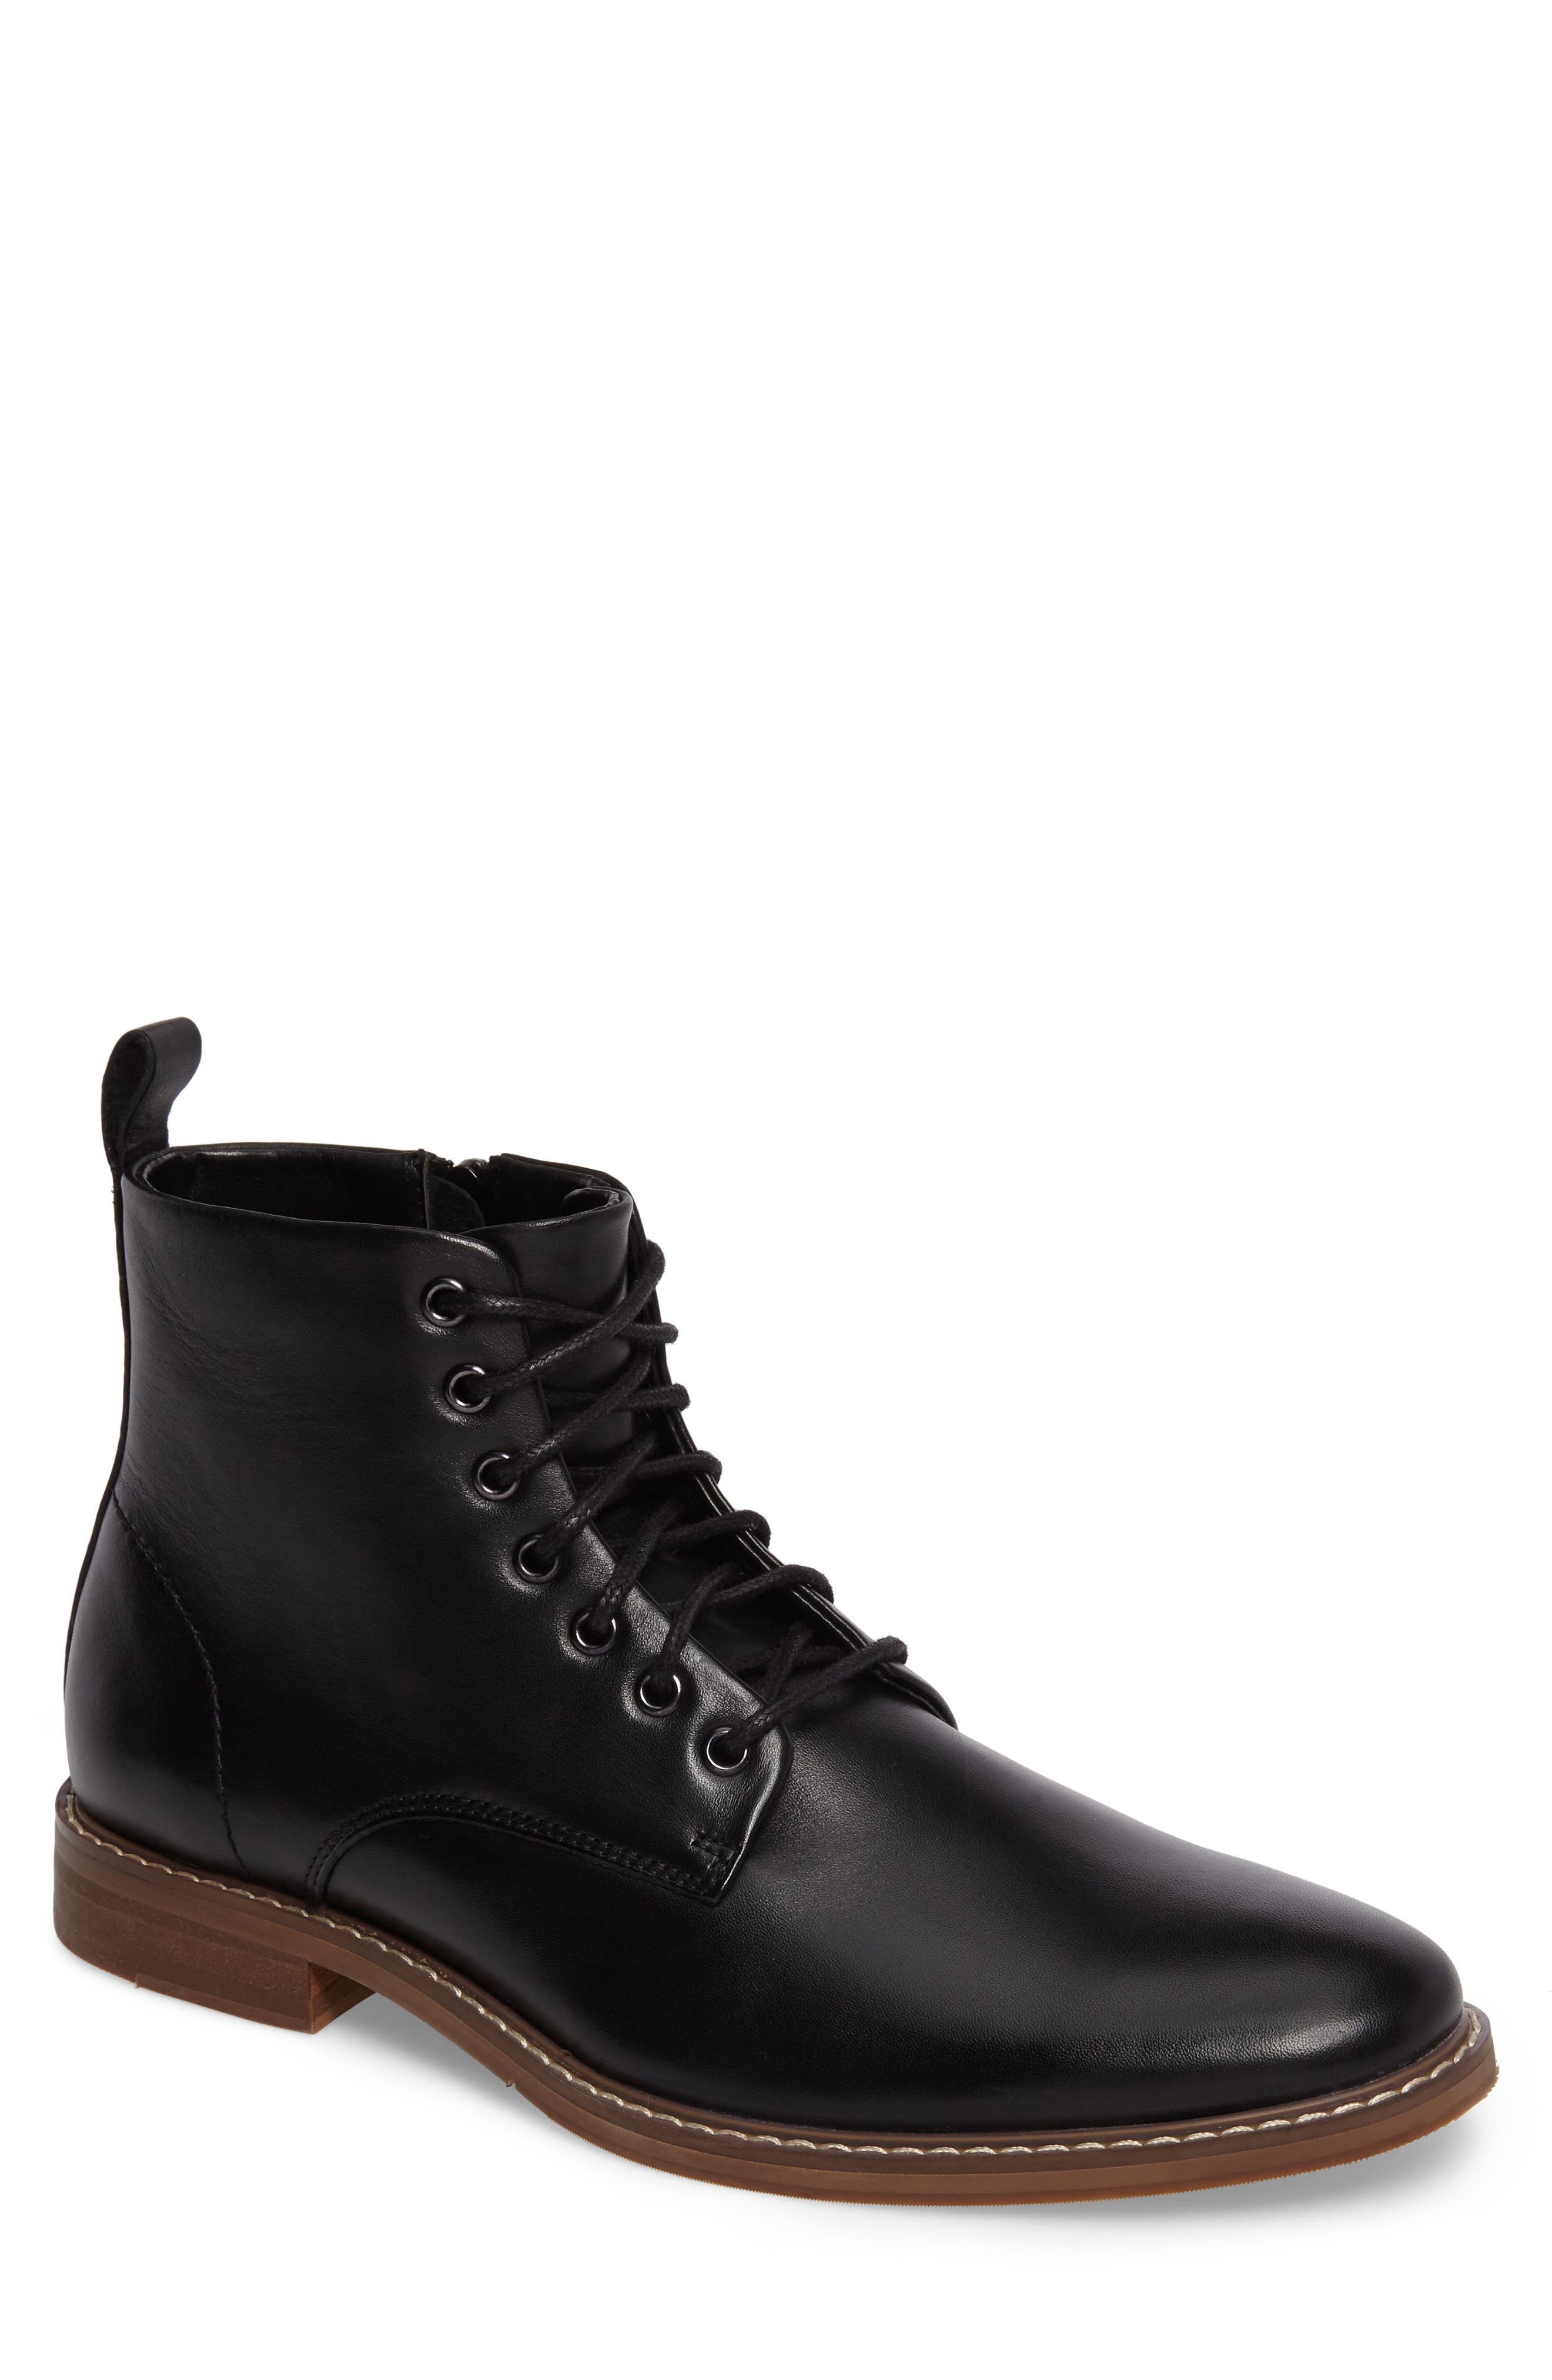 Albany Plain Toe Boot,                             Main thumbnail 1, color,                             BLACK LEATHER